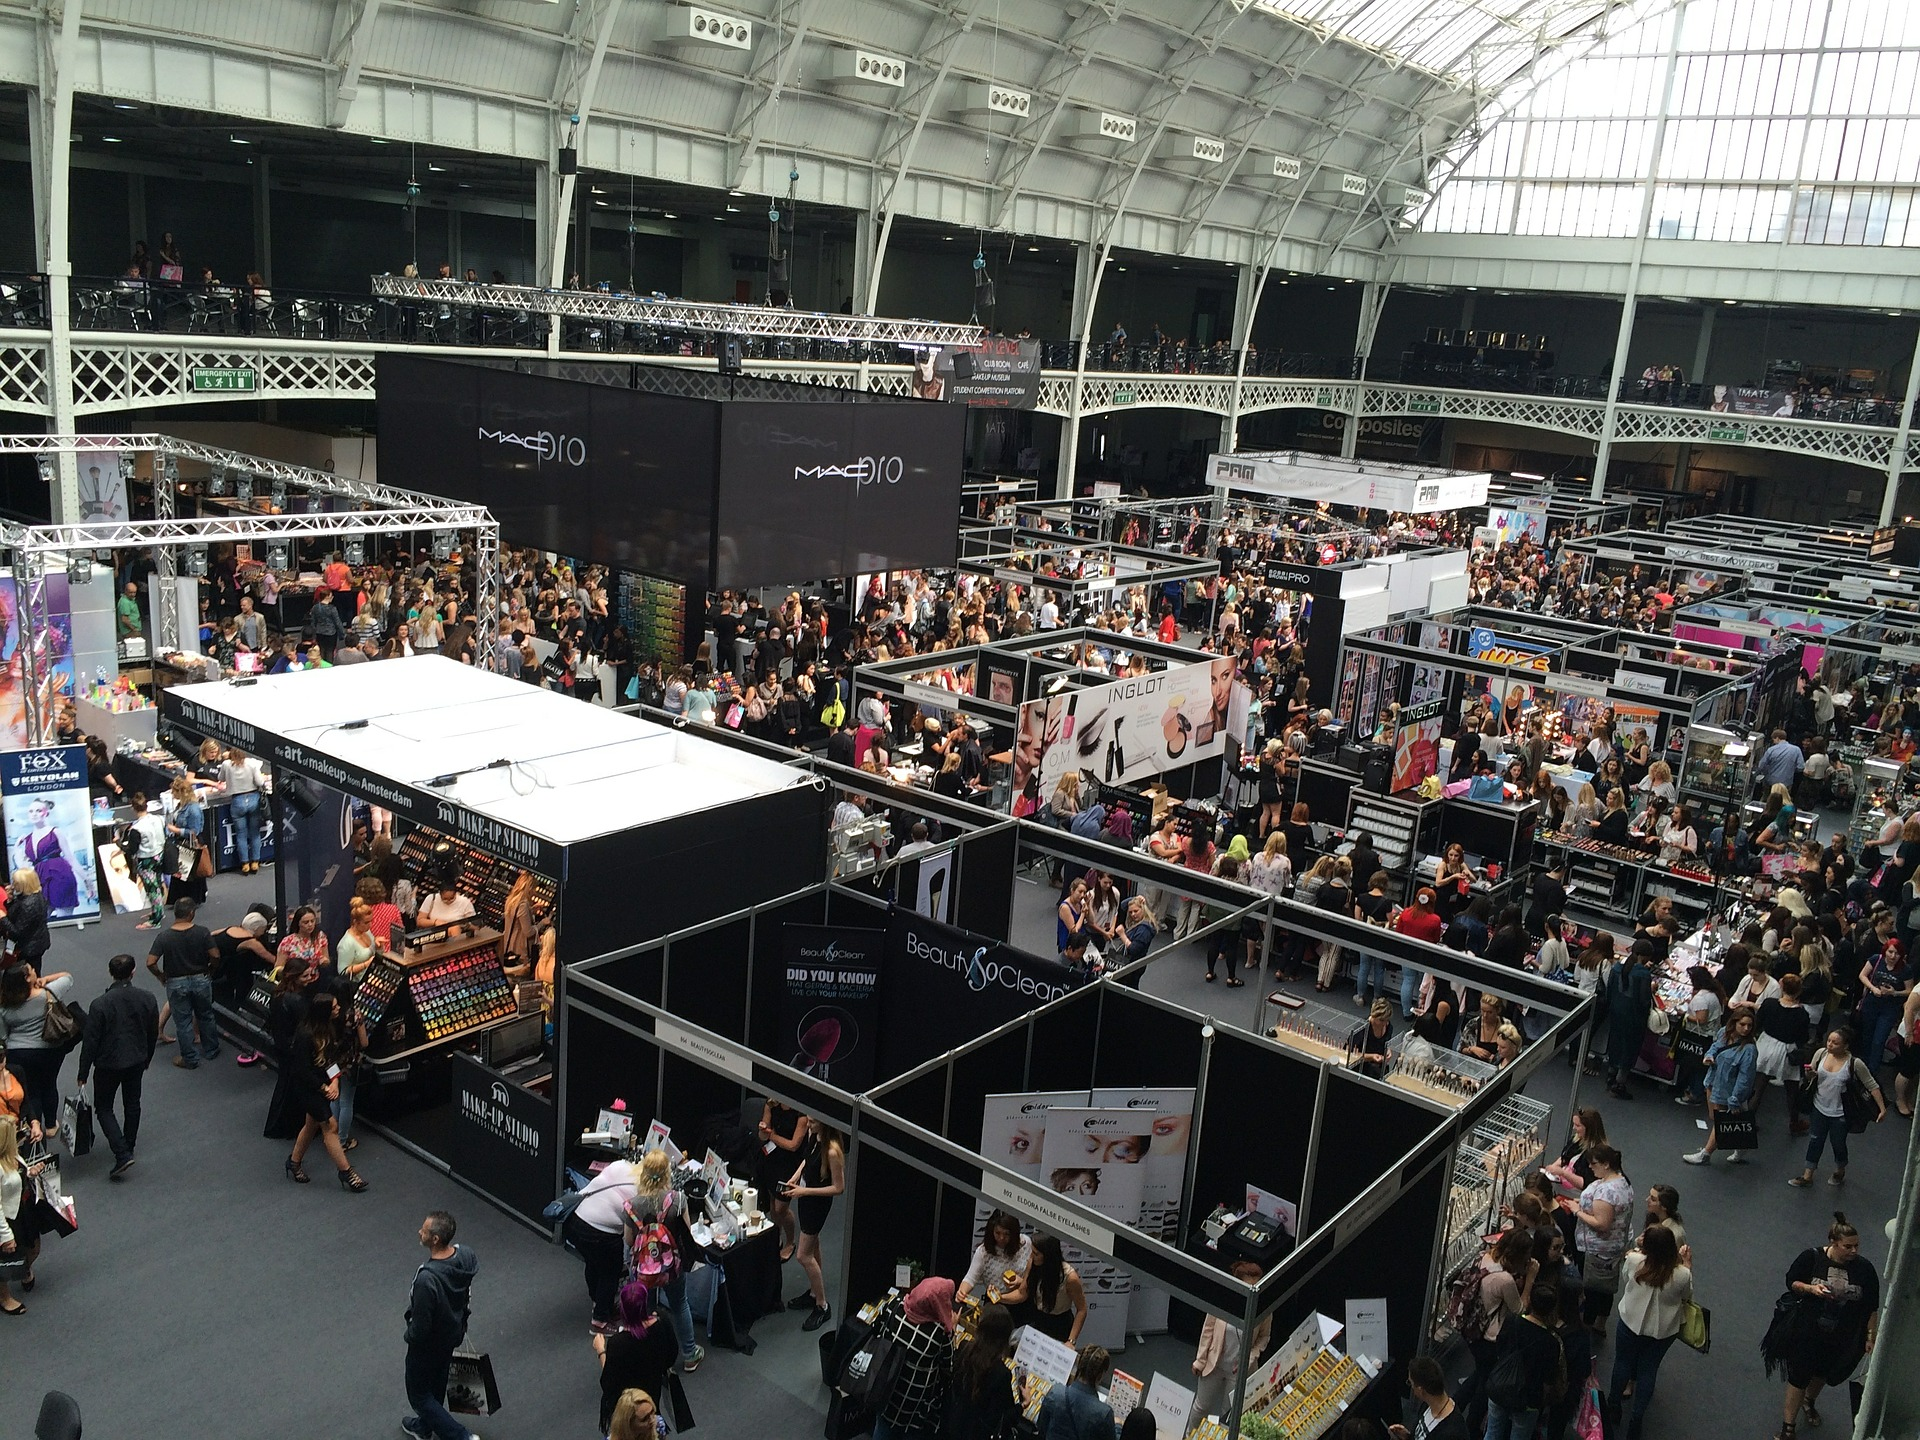 Trade show booth ideas for small budgets, Fun trade show booth ideas, How to attract a crowd to your stand, Interactive booth games, Creative trade show booth ideas